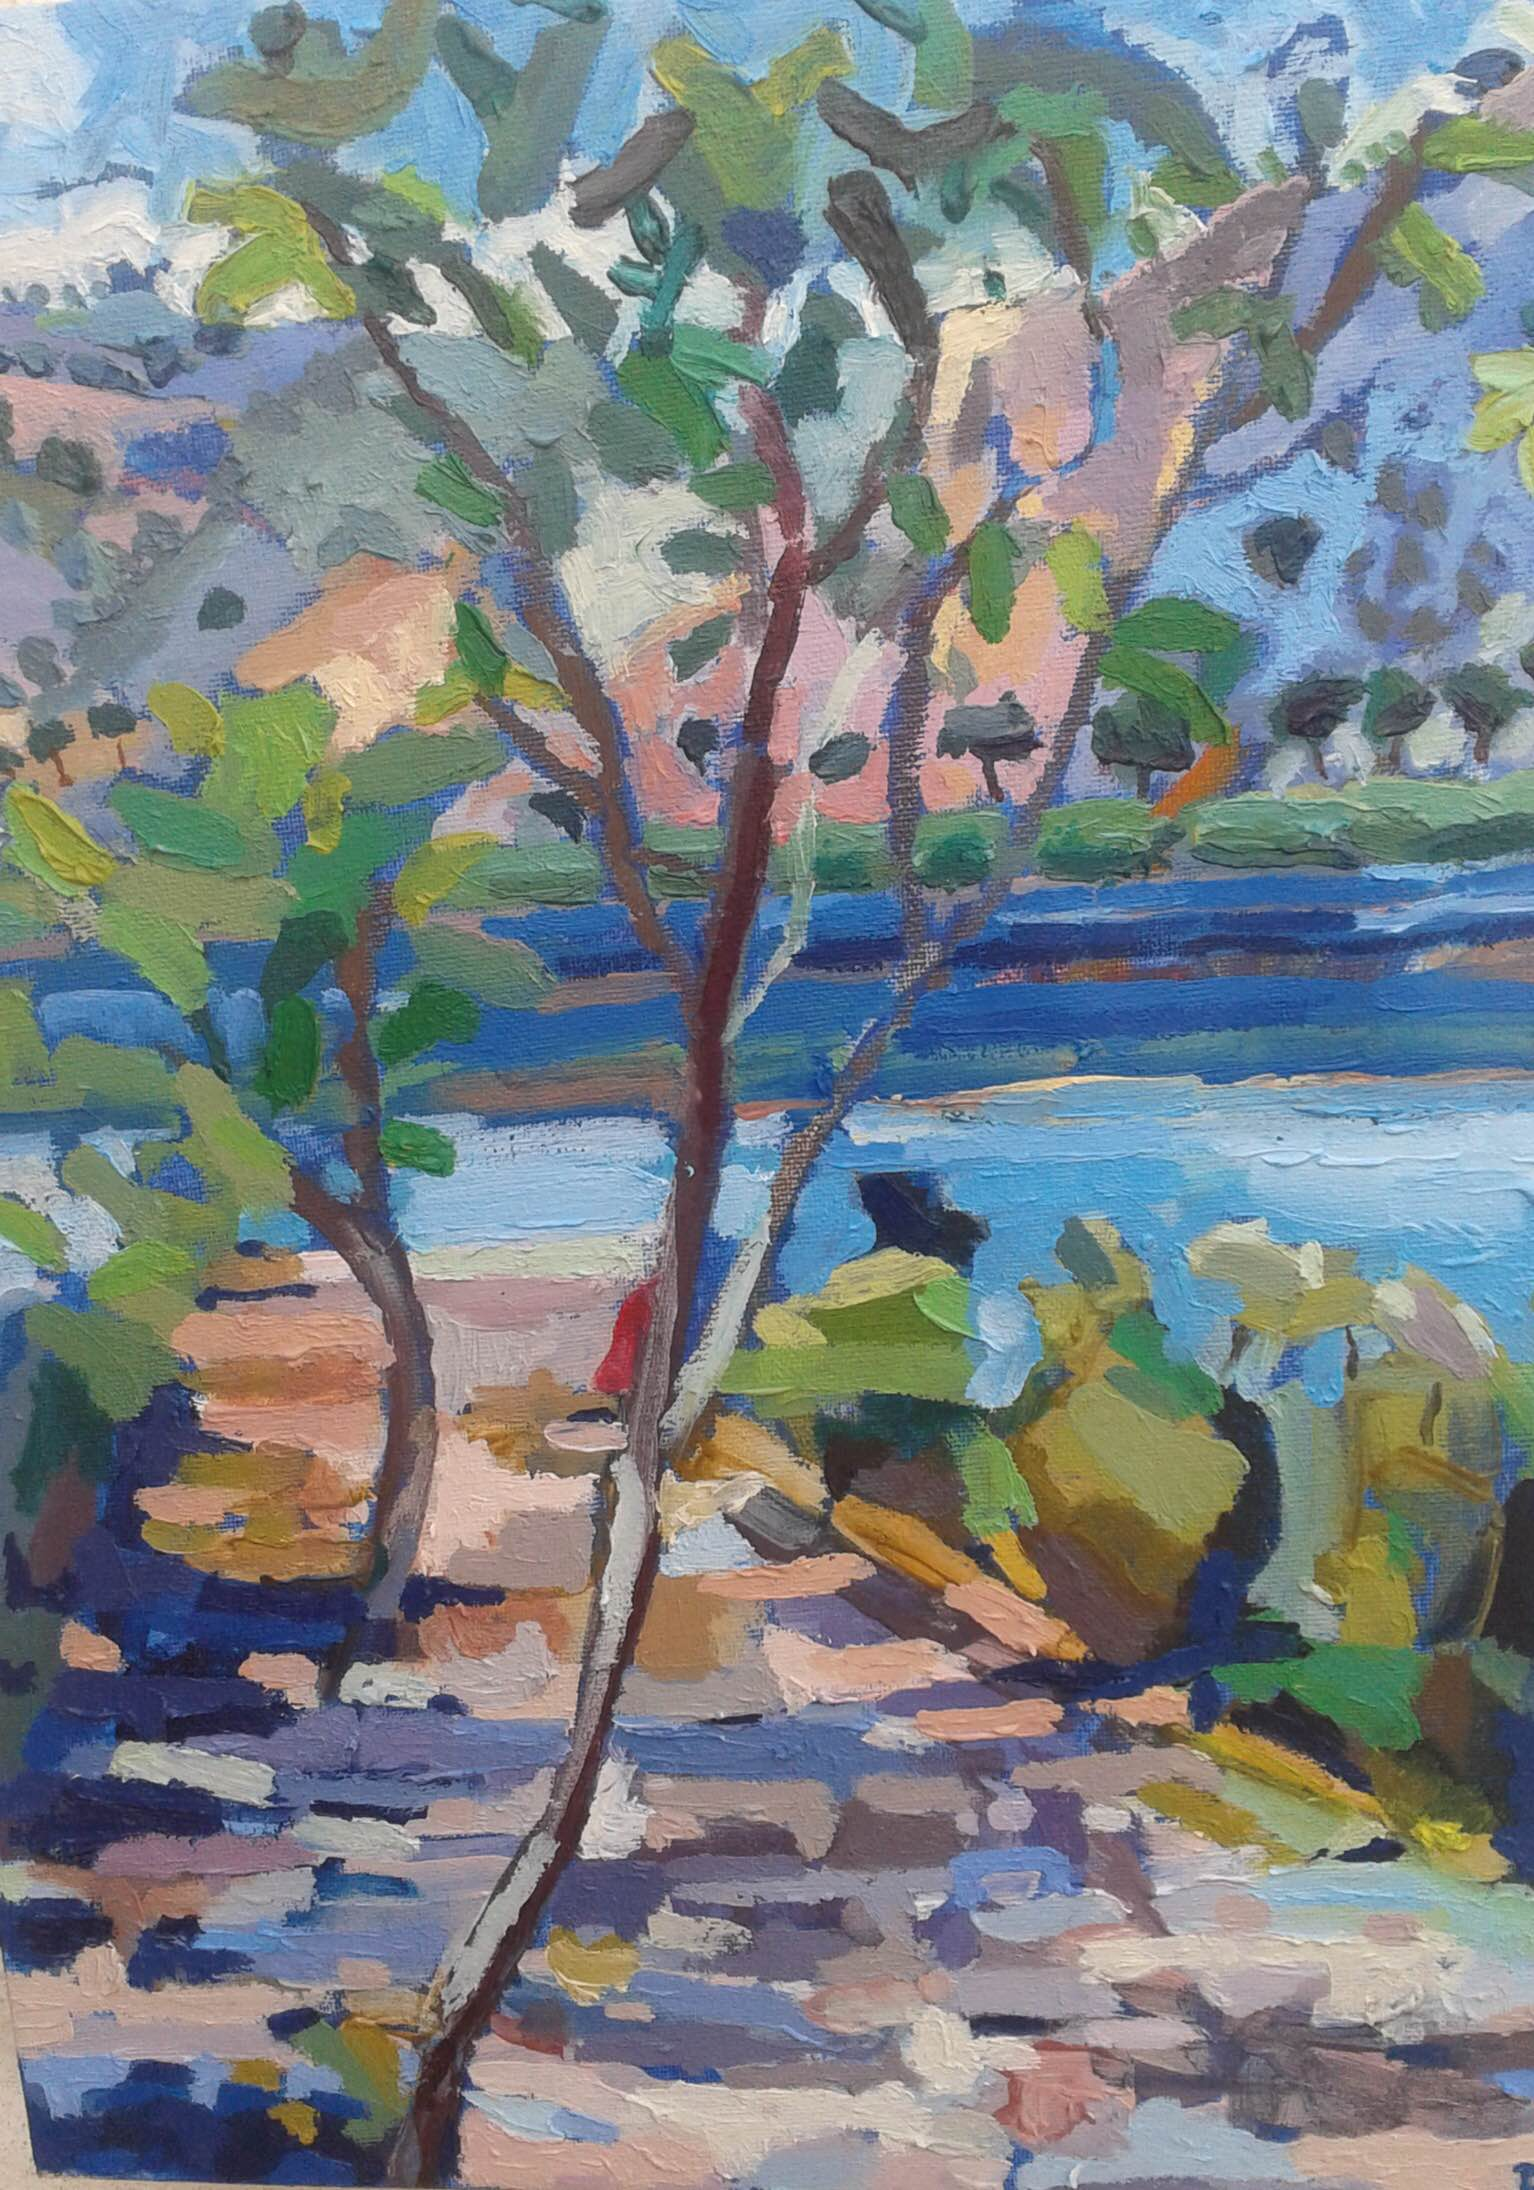 Kimni Kourna- oil on canvas 2014- 41cm x 31cm